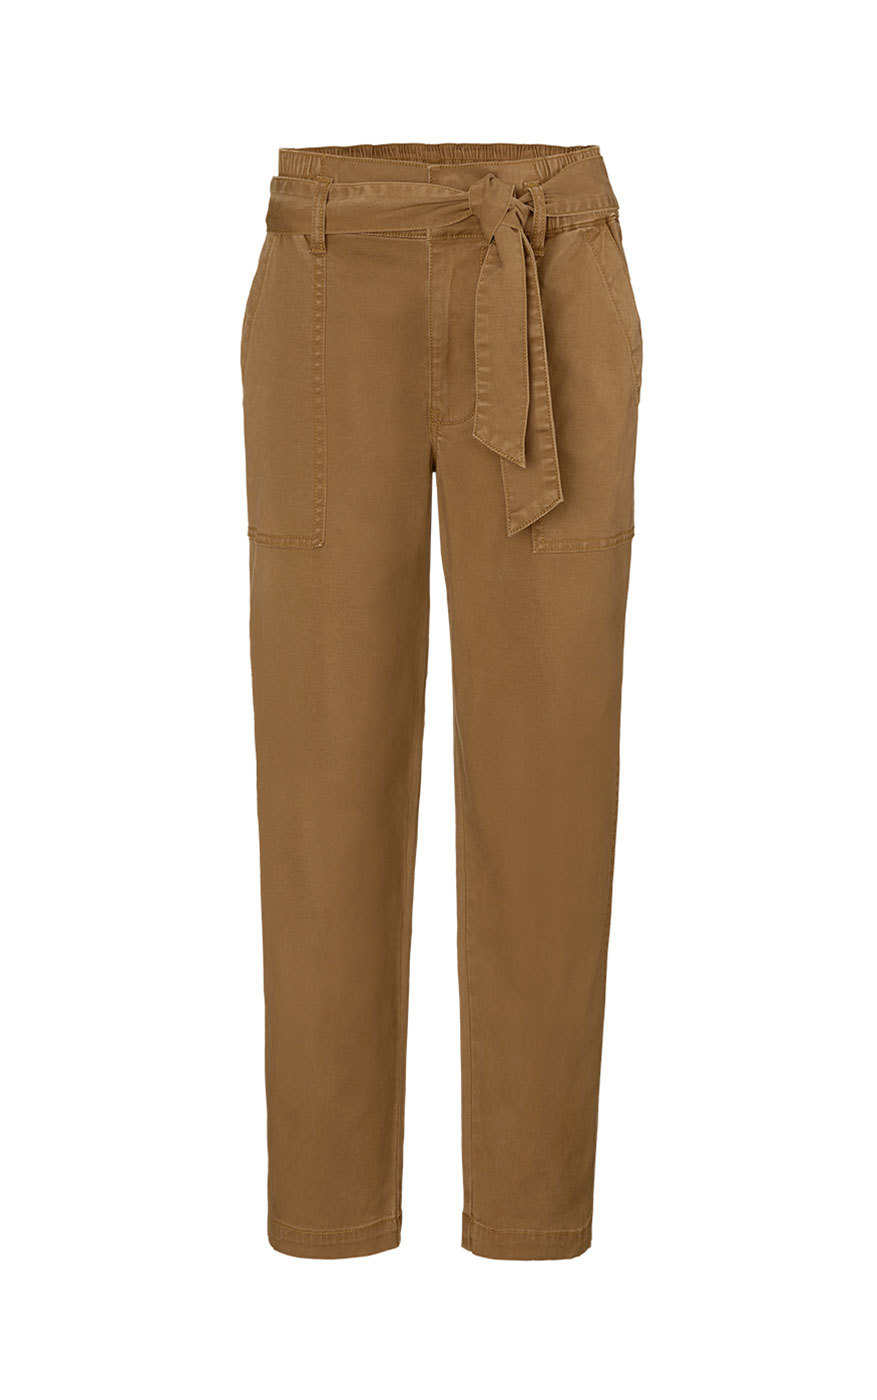 cabi's Discovery Trouser